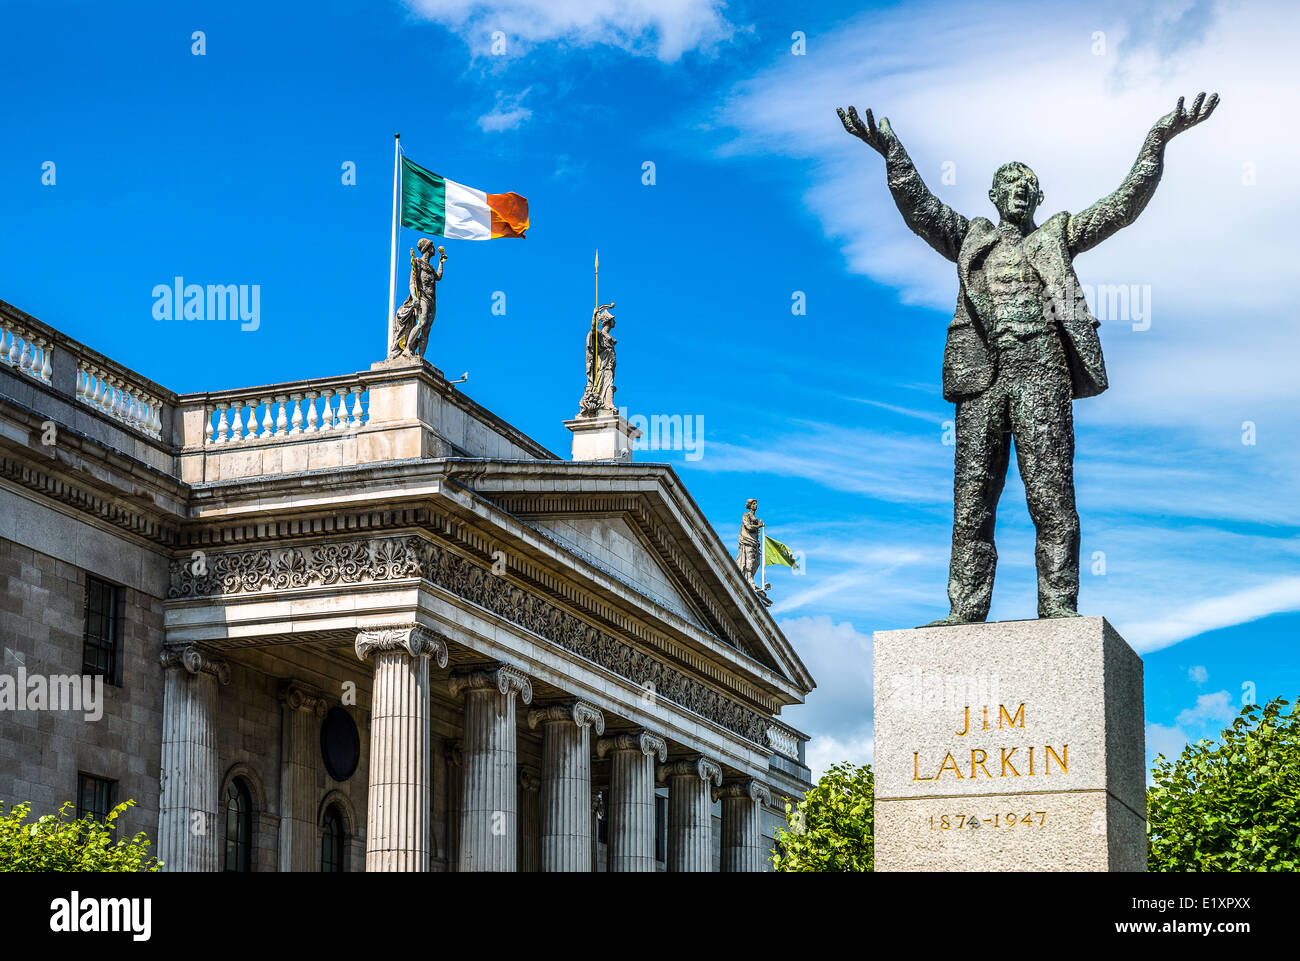 Ireland, Dublin, O'Connel street, the Jim Larkin monument - Stock Image